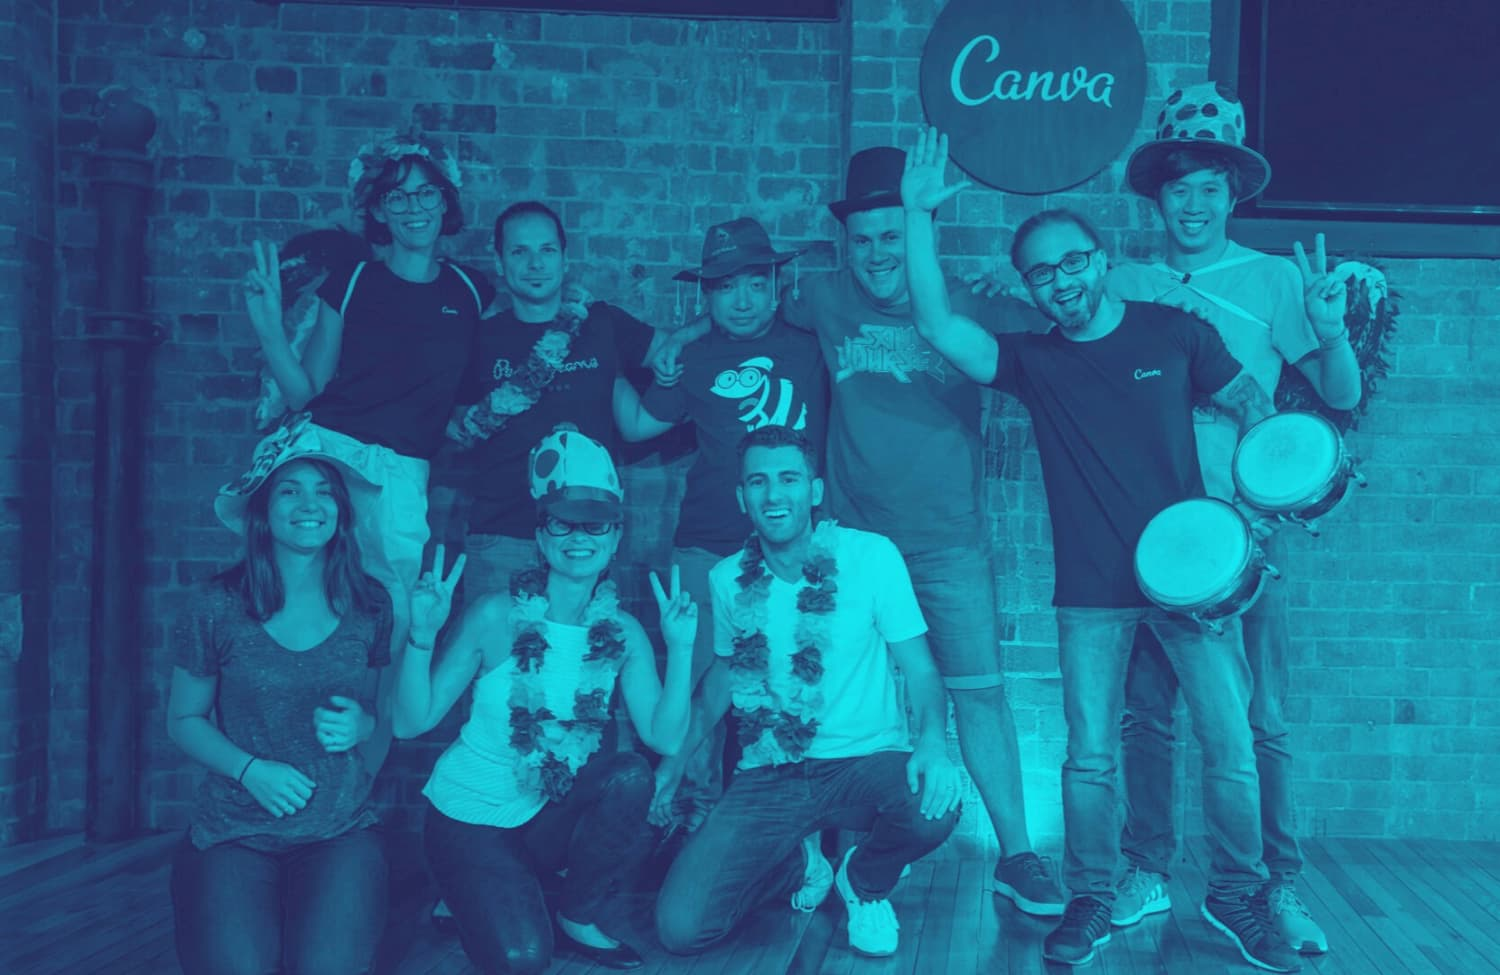 How Canva got ahead in diversity and inclusion [an interview with COO, Cliff Obrecht]